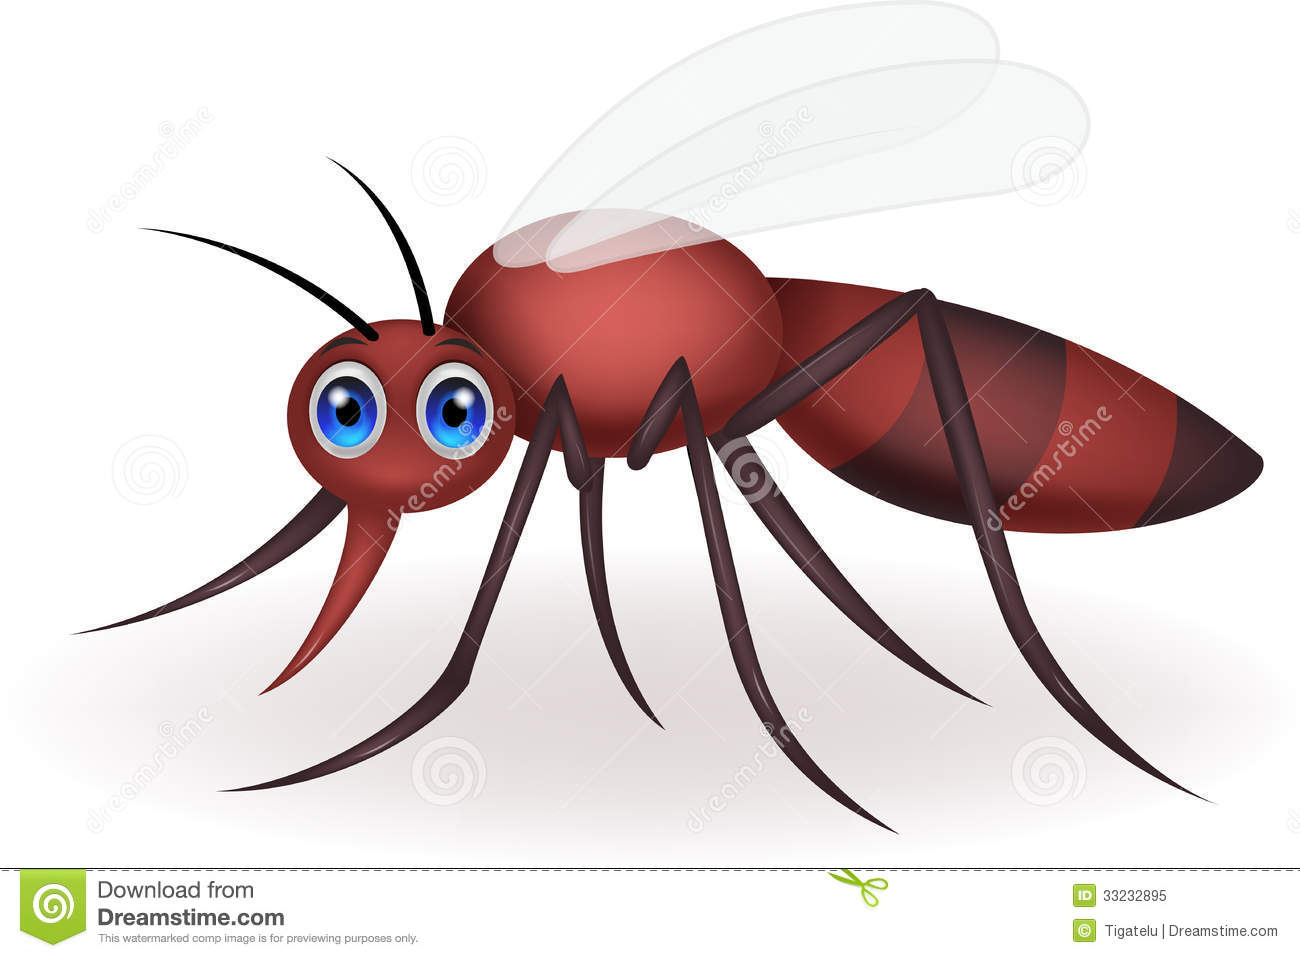 Mosquito Cartoon Royalty Free Stock Photo - Image: 33232895